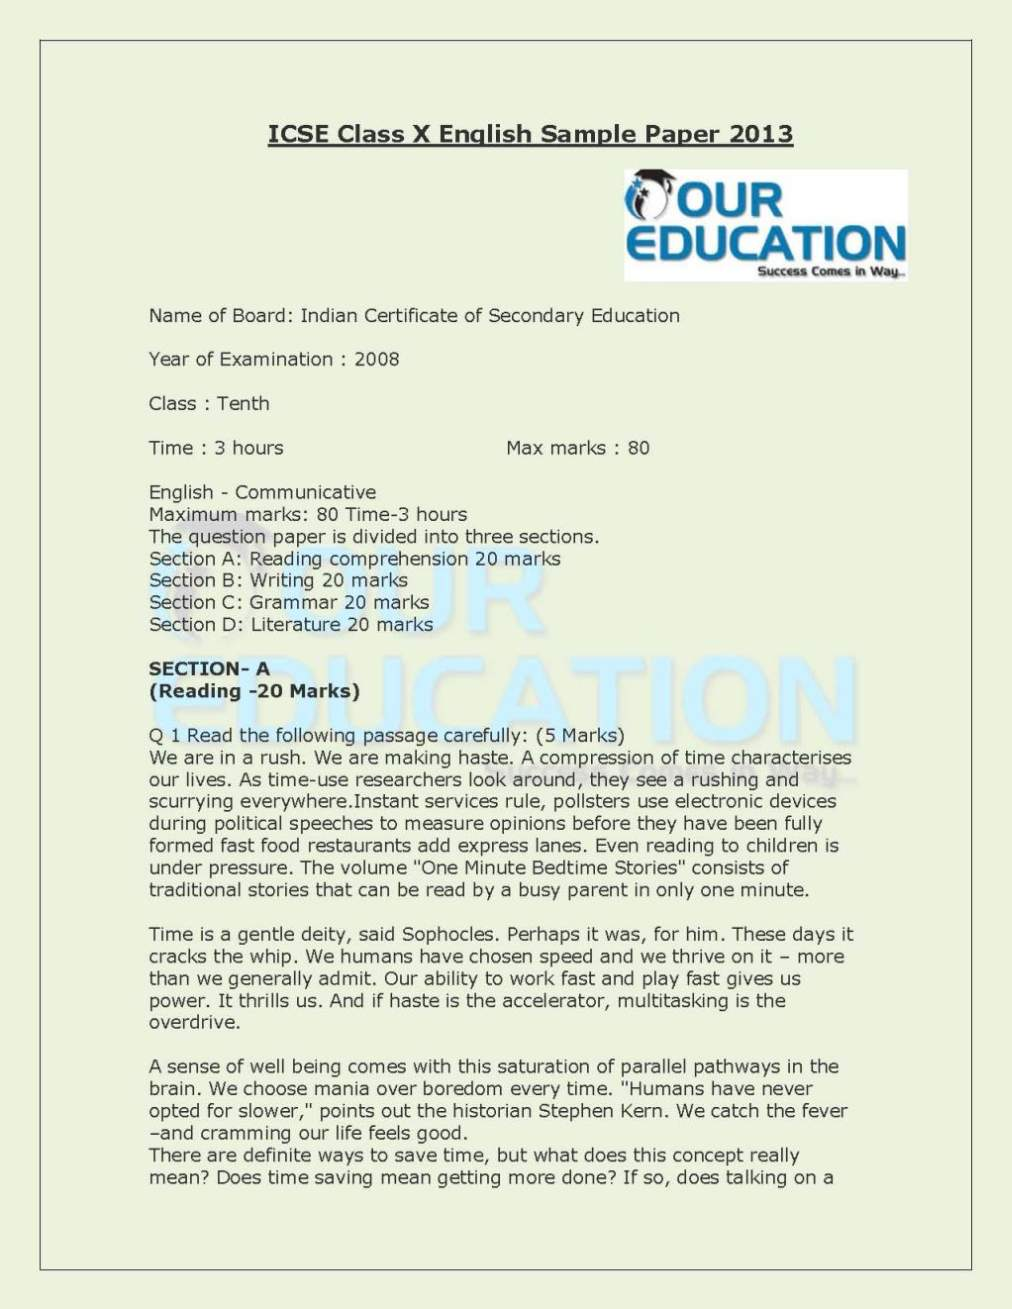 006 Teen Pregnancy Essay Icse 10th English Question Papers Amazing Teenage Pdf Body Introduction In The Philippines Full